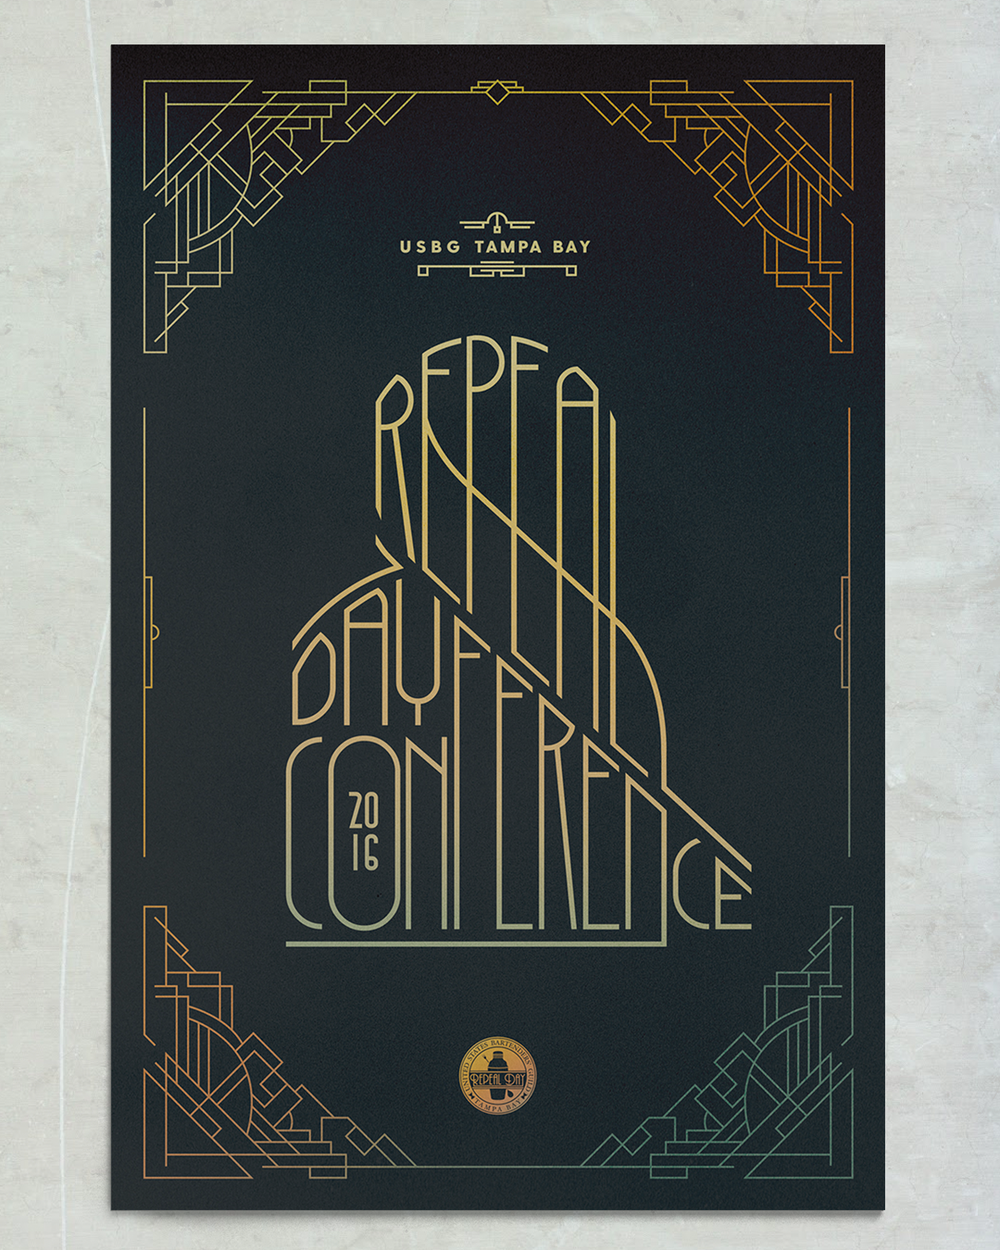 USBG Tampa Bay Repeal Day 2016 Poster - Palmer Holmes